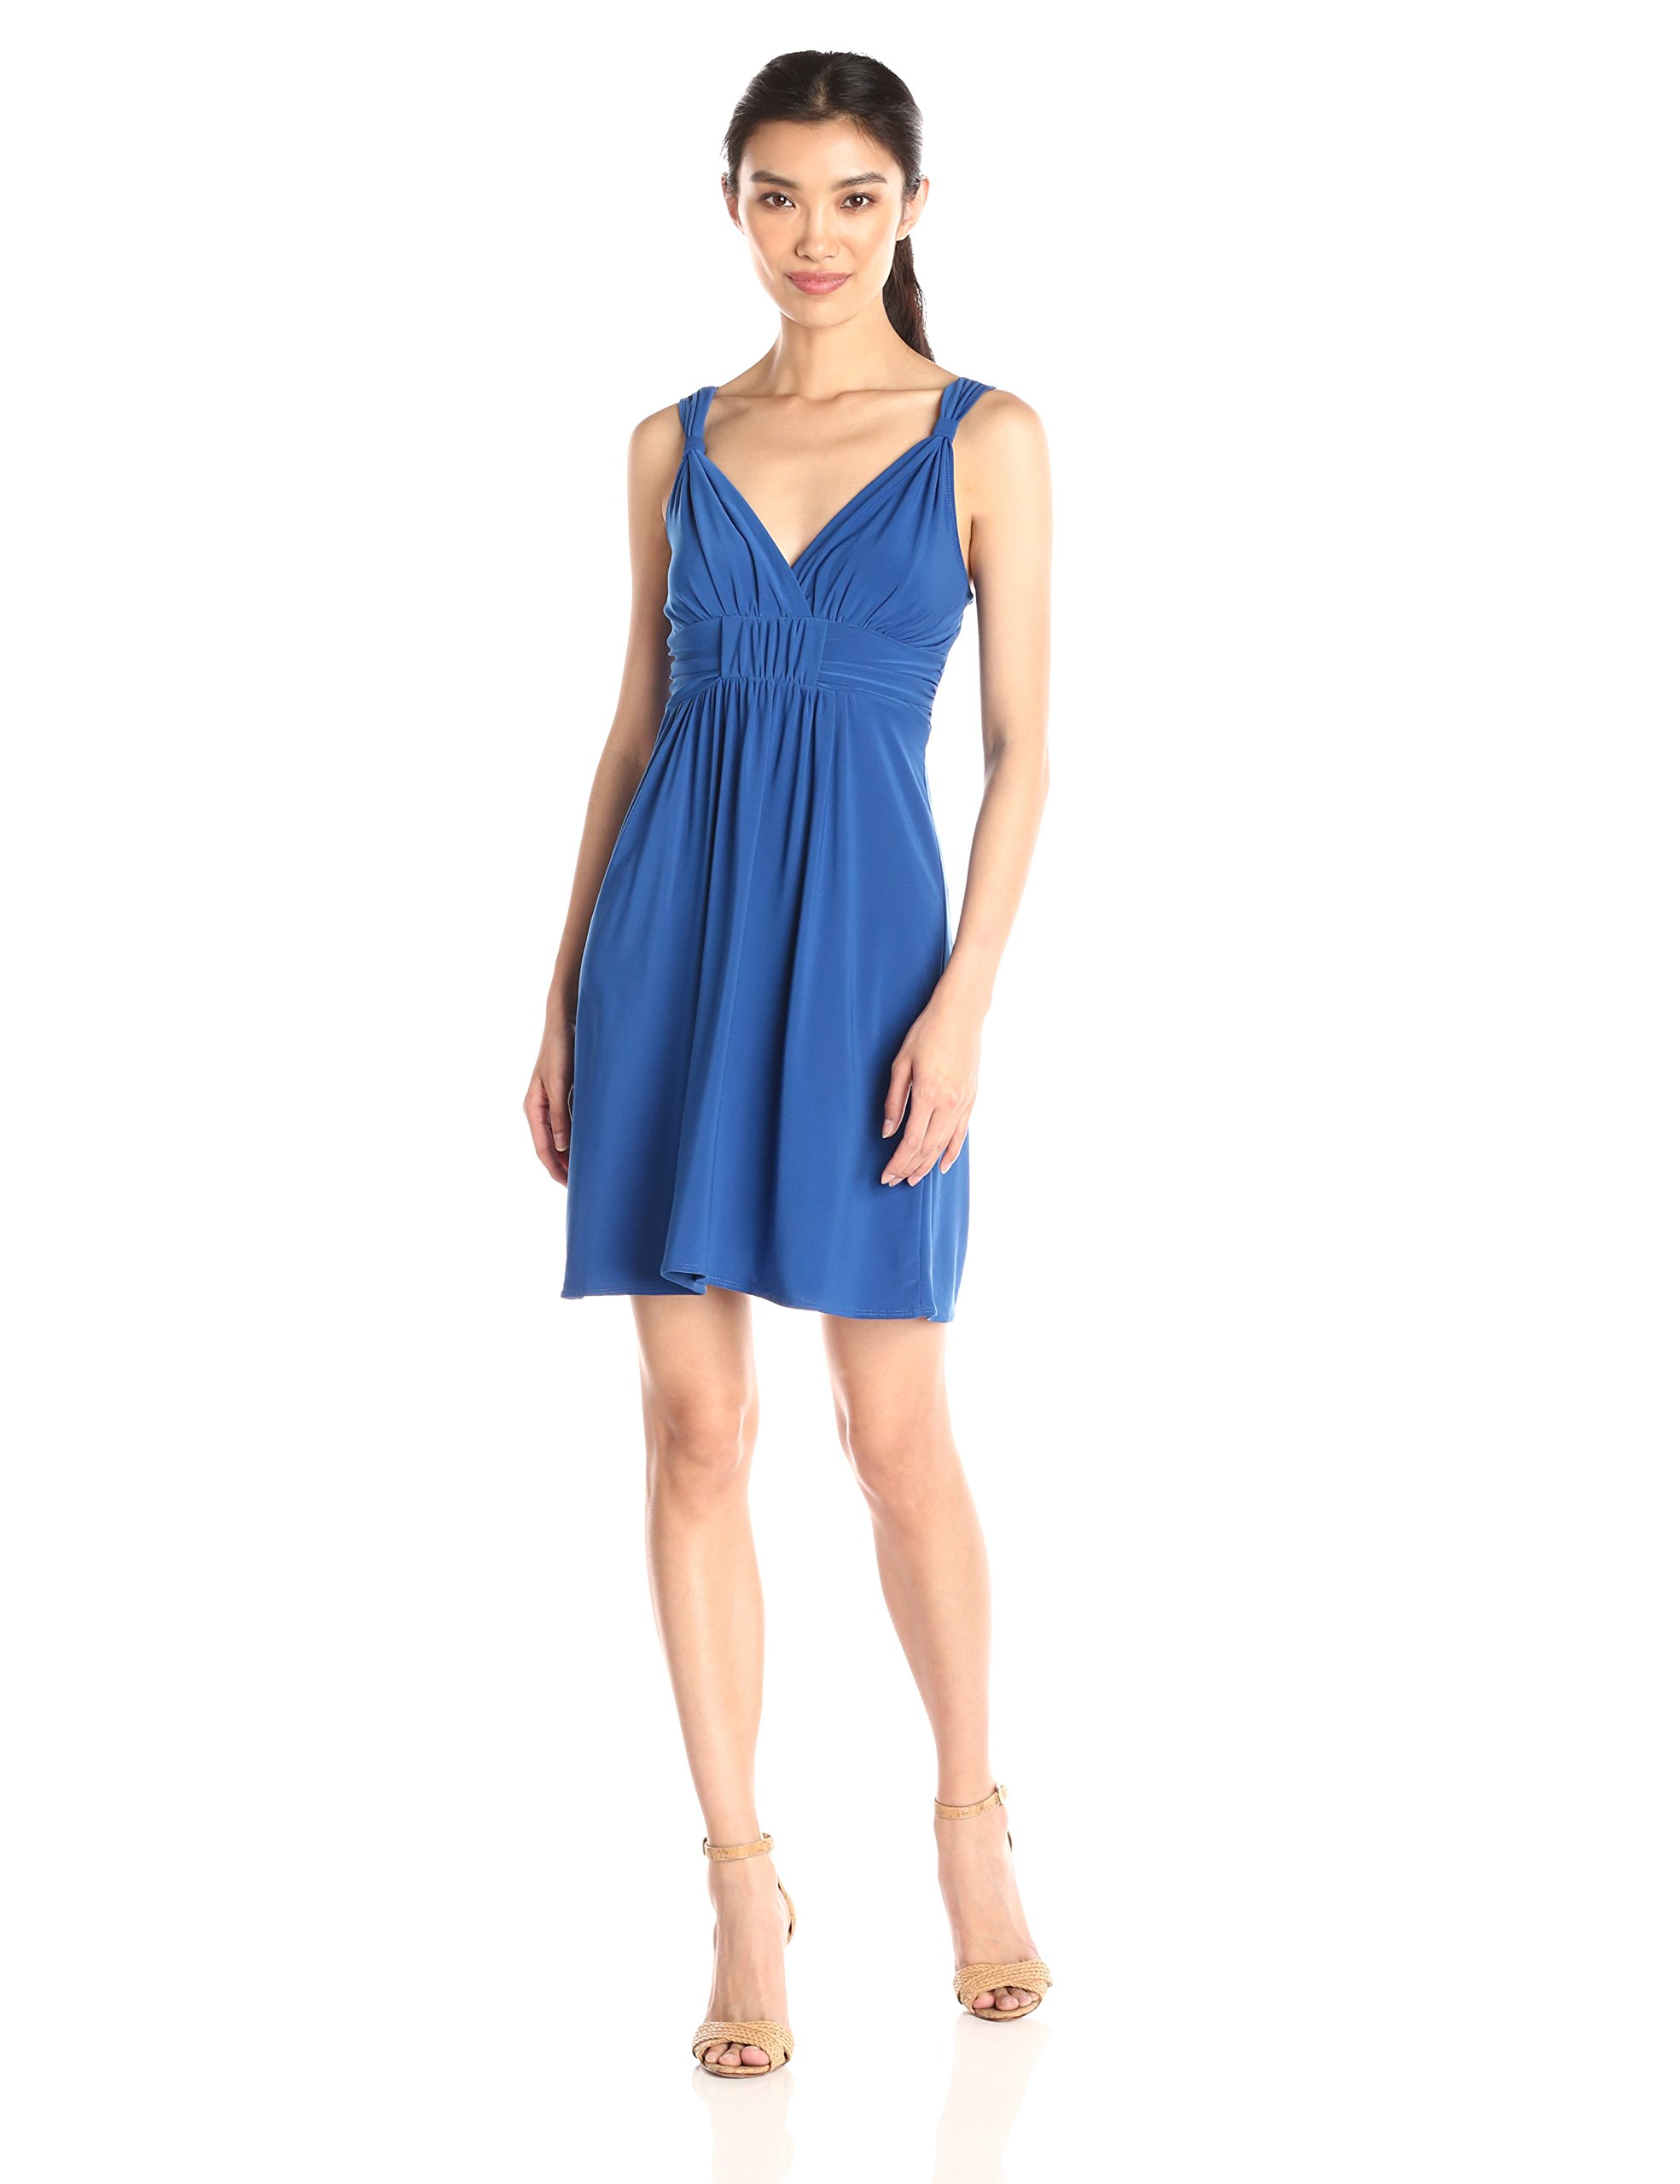 Available at Amazon: Star Vixen Women's Sleeveless Knot-Front Surplice Dress